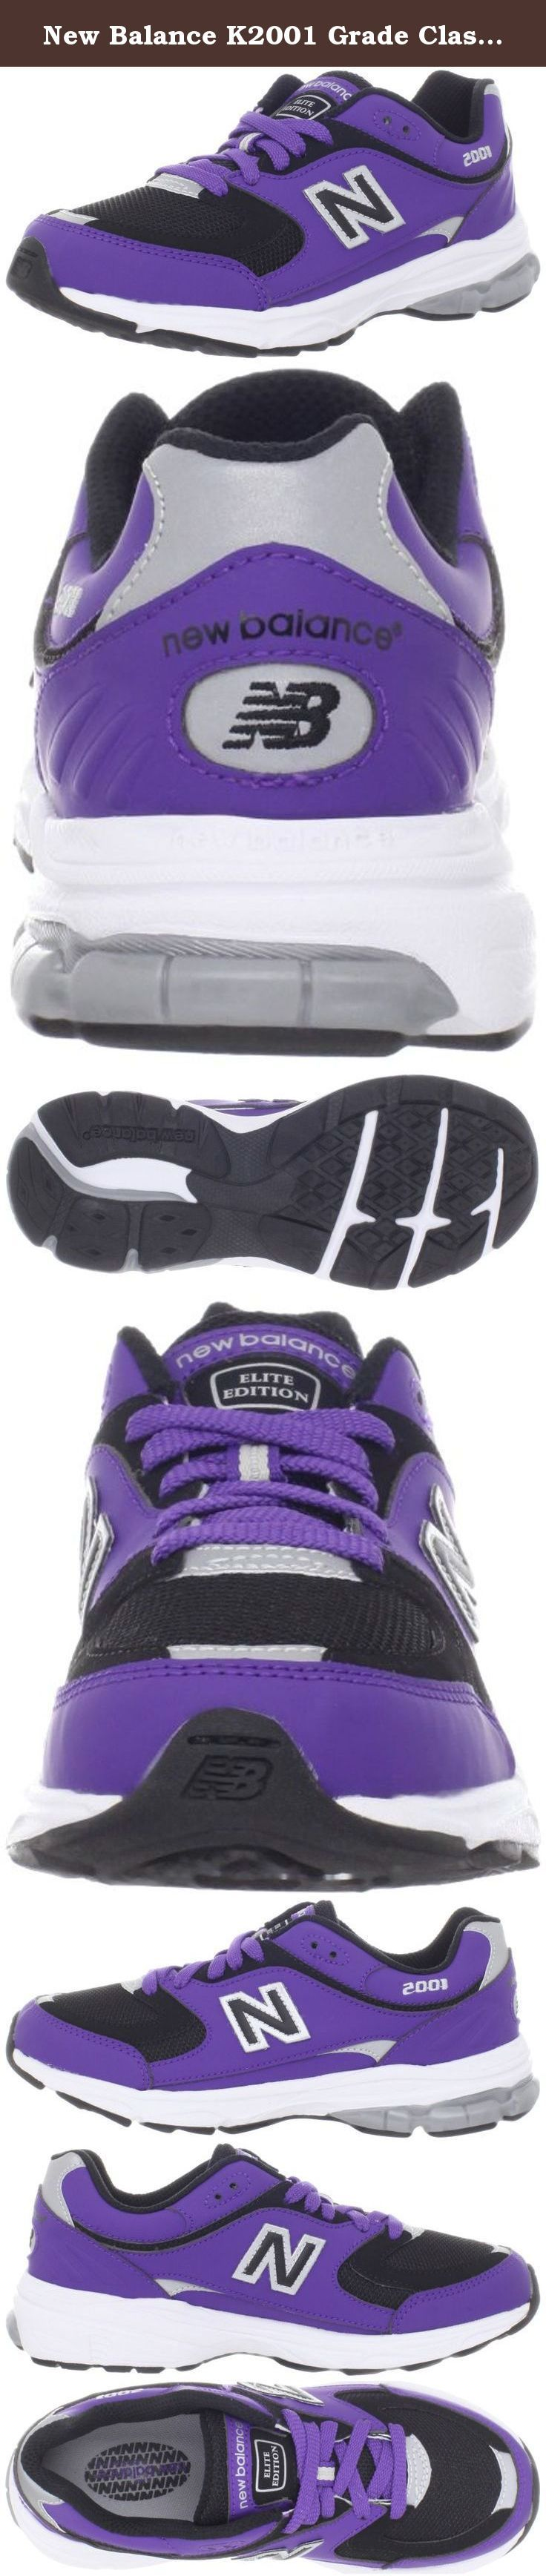 New Balance K2001 Grade Classic Running Shoe (Little Kid/Big Kid),Purple,7 M US Big kid. New Balance Youth K2001 Running Shoe Features: Synthetic upper with mesh toe box for breathability. Foam-padded collar and tongue. Breathable mesh lining and cushioned footbed for comfort and added shock absorption. Traditional lacing for a secure fit. Injection-molded EVA midsole for cushion with each step. Rubber outsole and heel cup for durability and response with each step. Imported…